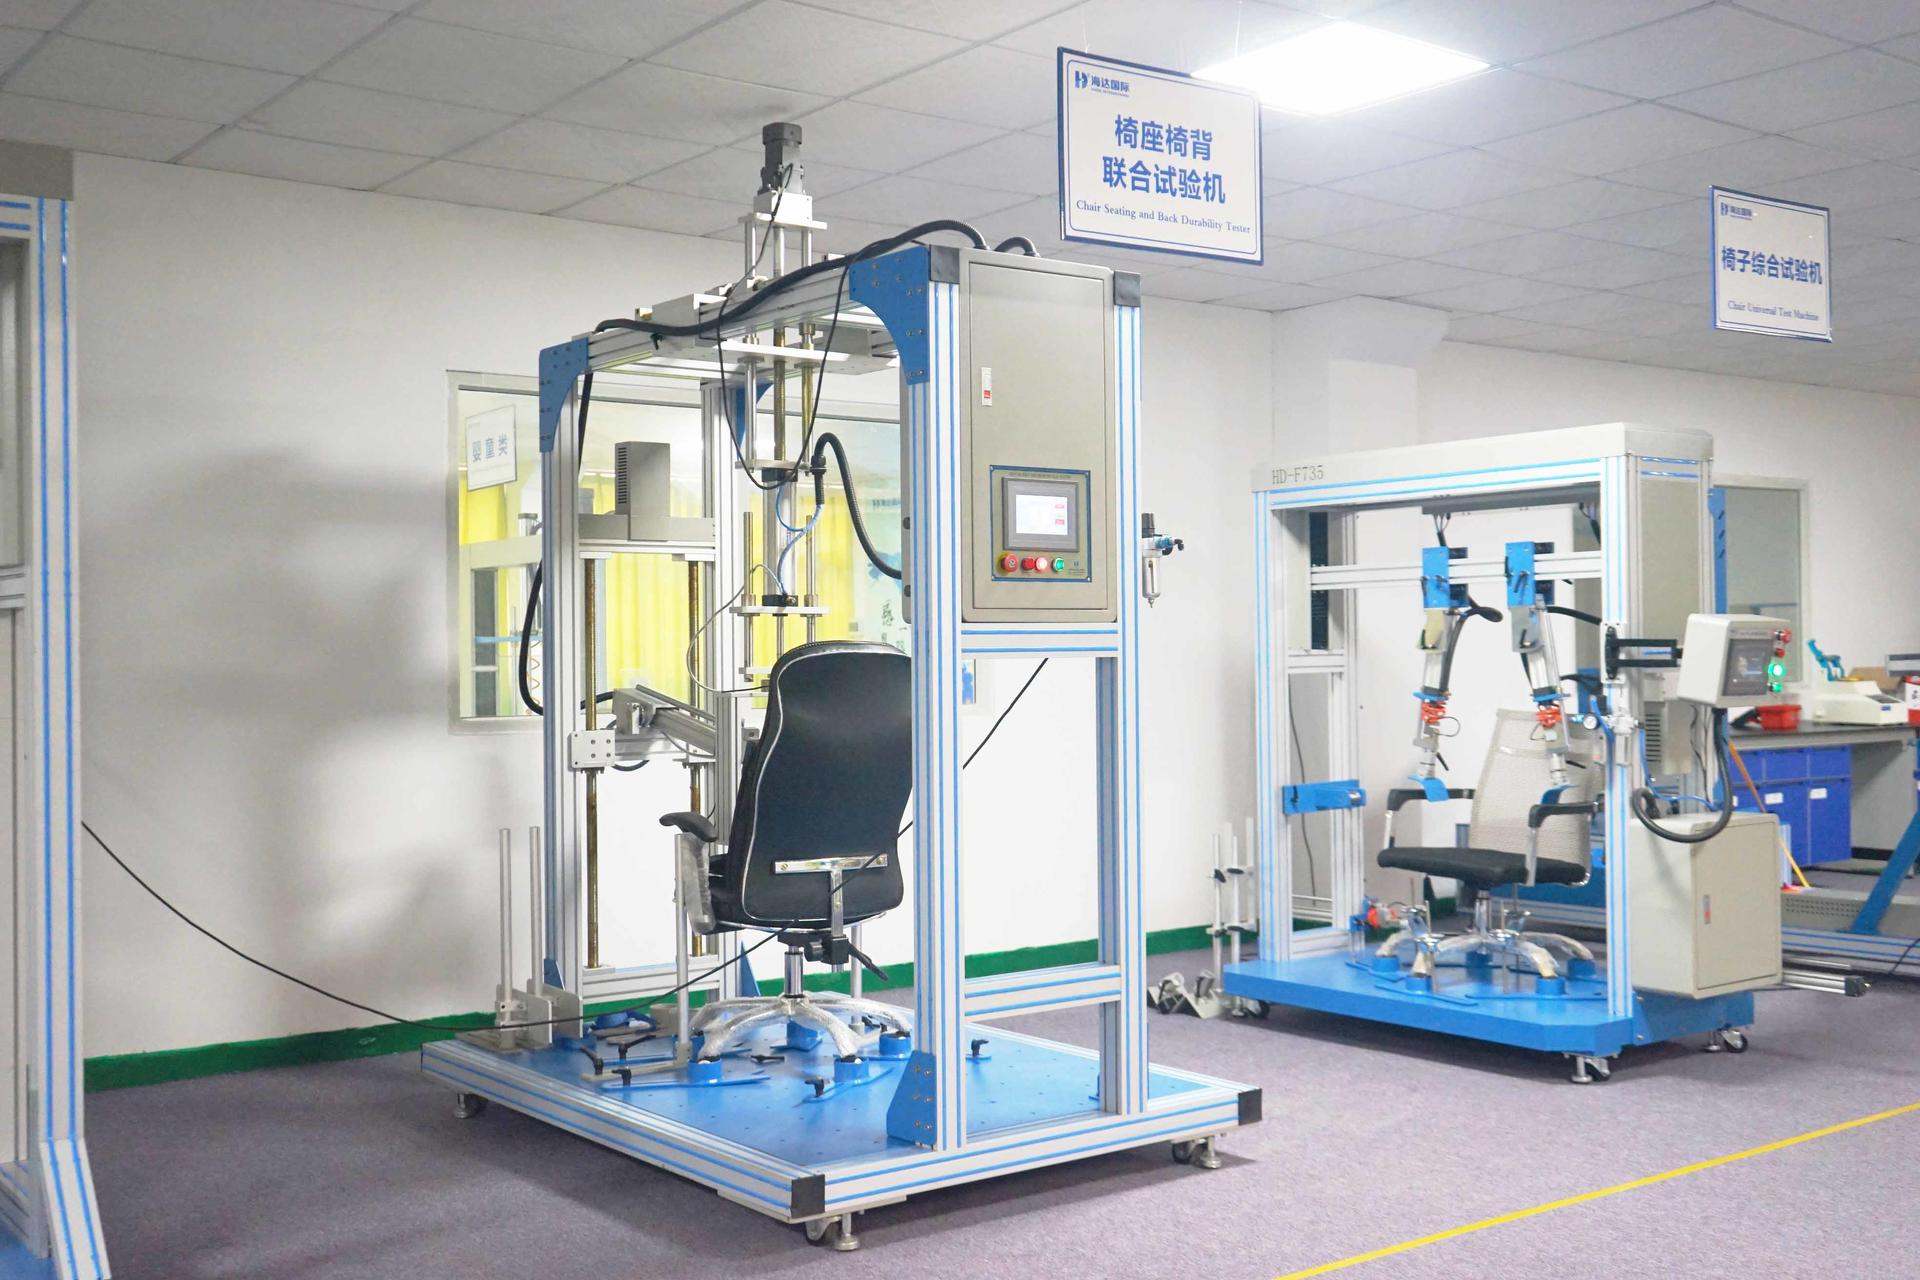 Chair seat back joint testing machine